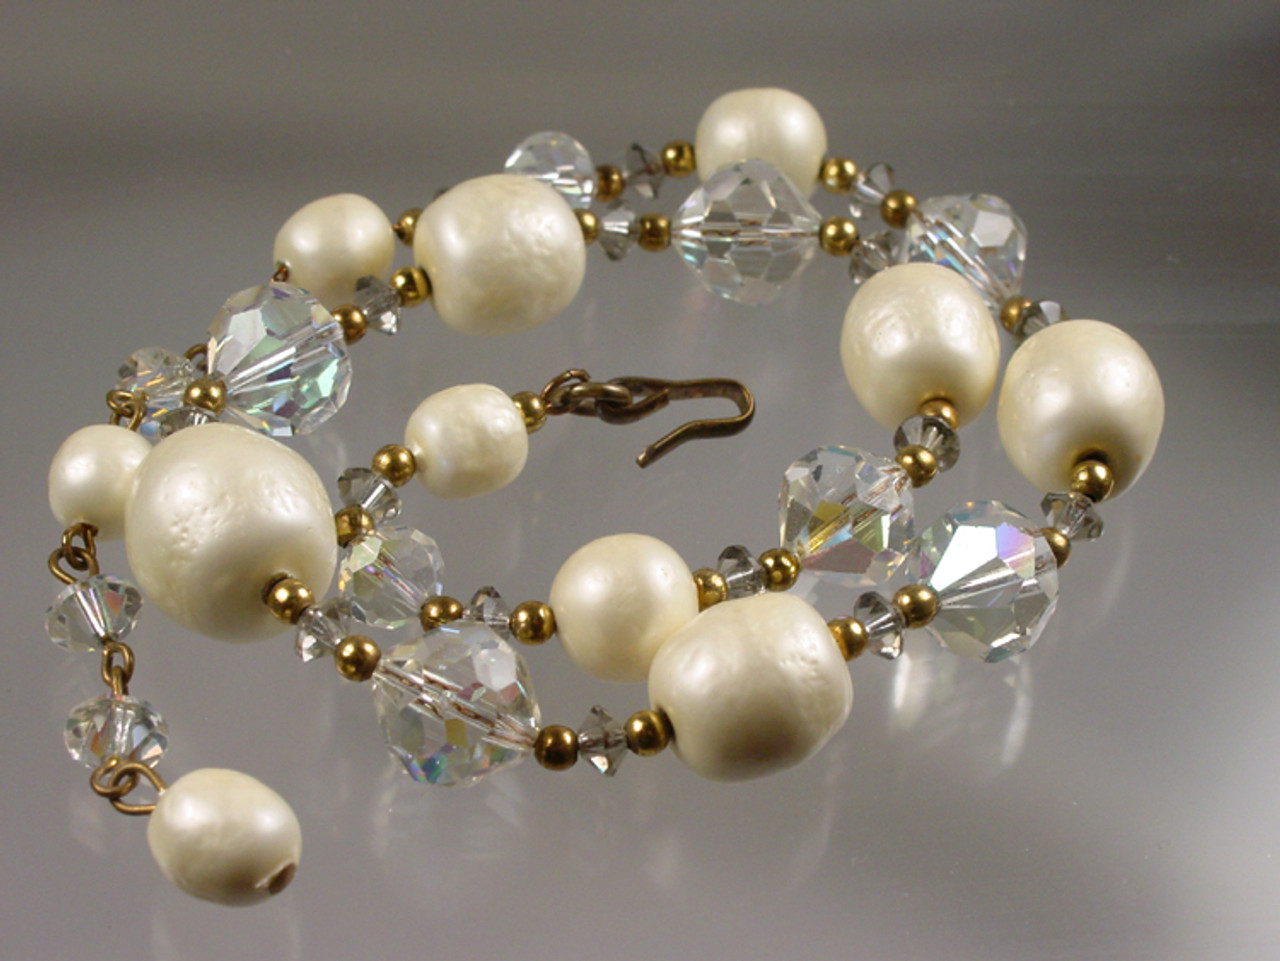 Textured glass pearls on gold filled chain